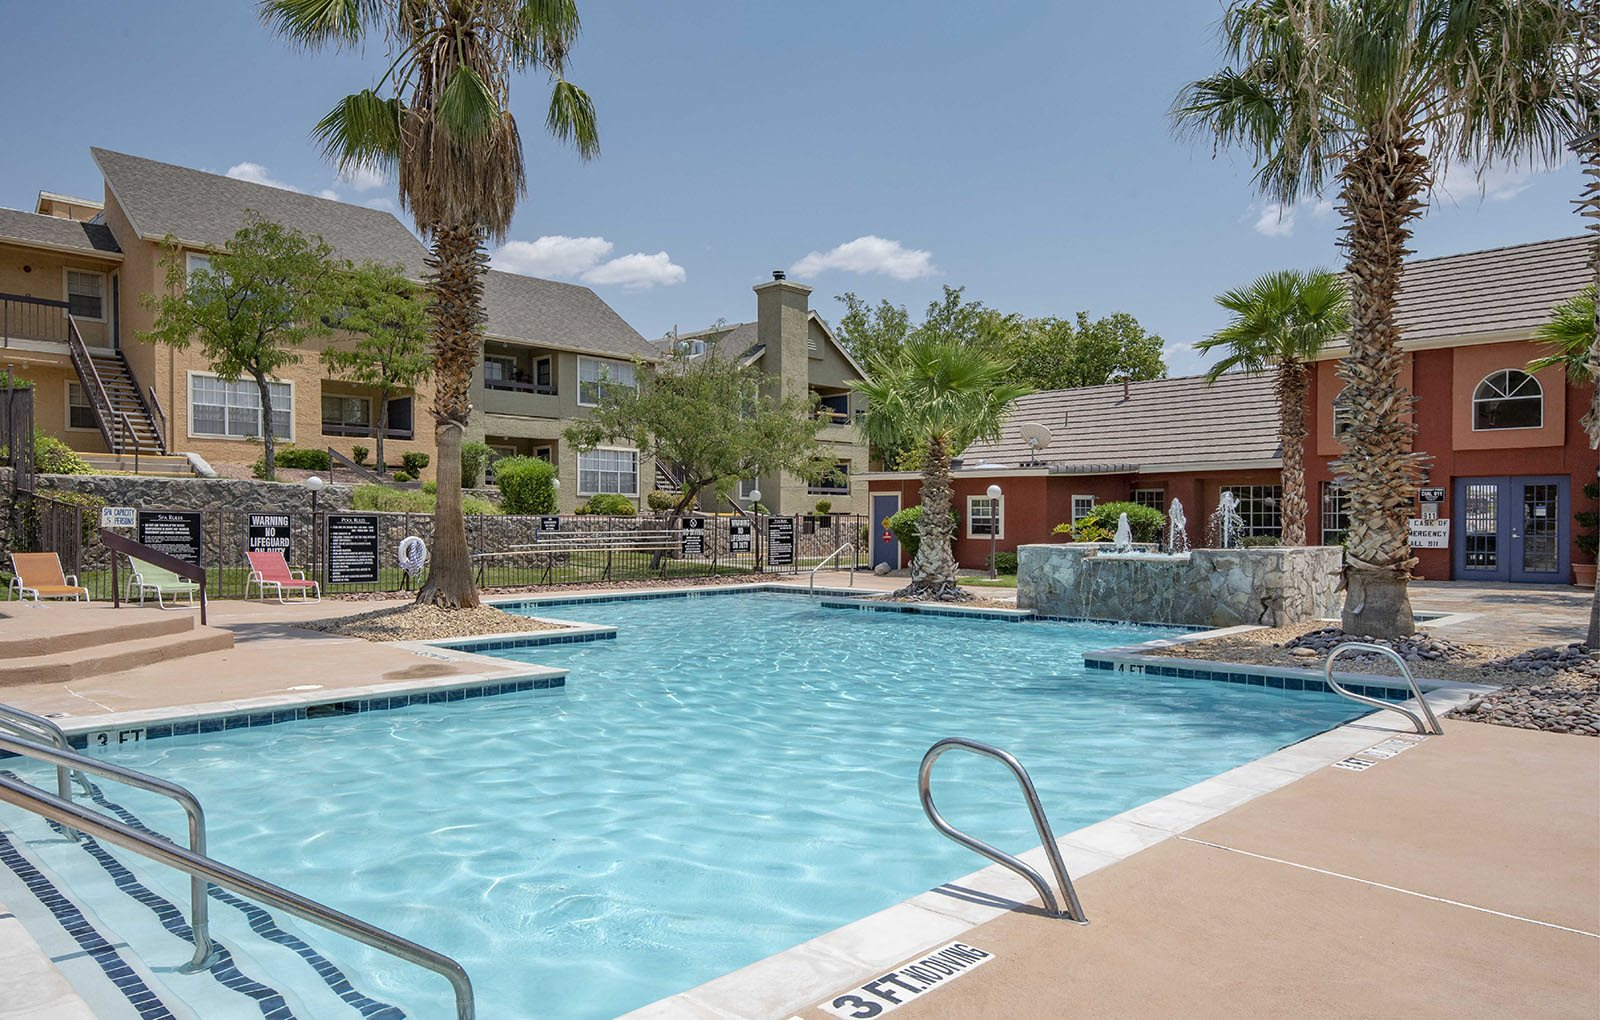 Pool and lounge chairs l Ryans Crossing in El Paso, TX